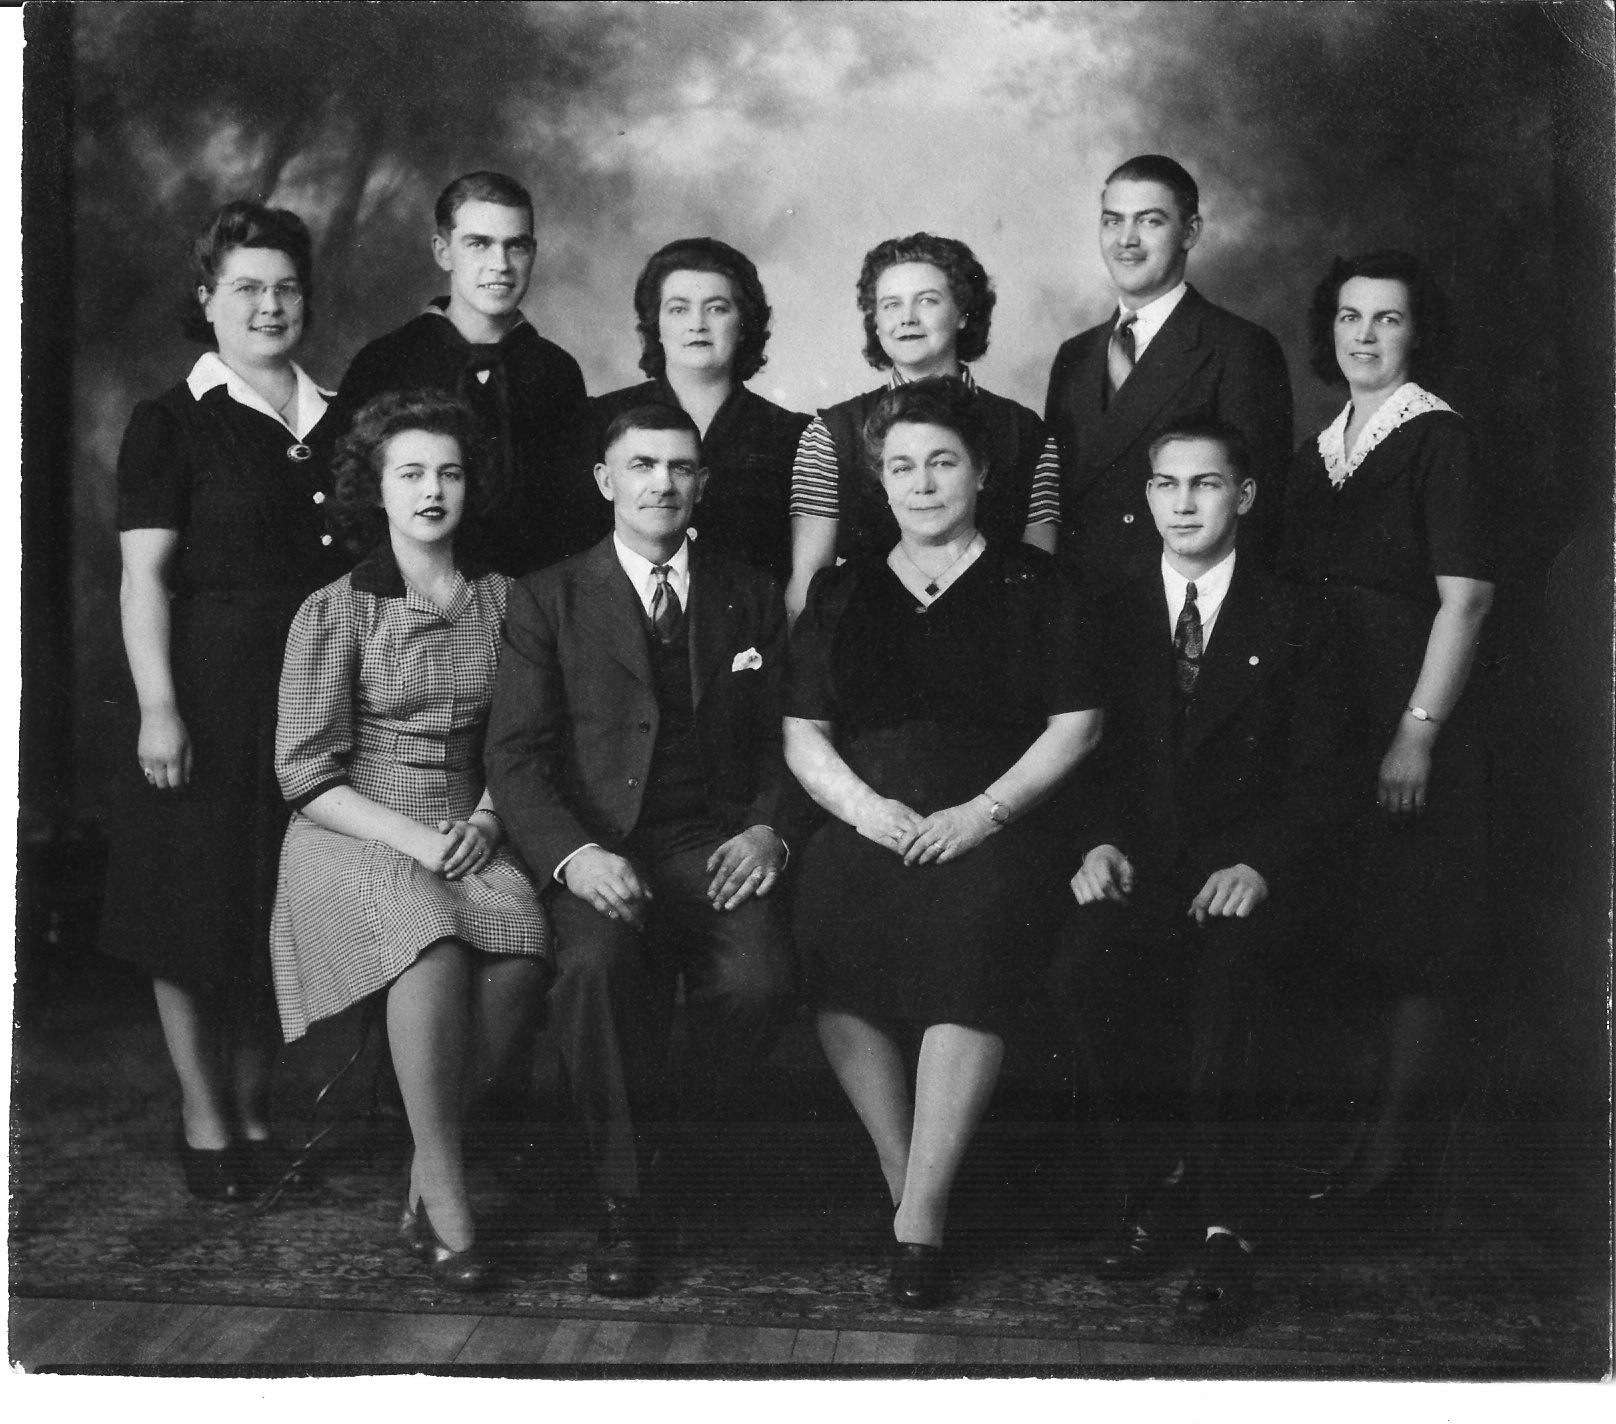 1942 - Ben & Marie Larson family Brainerd, Minnesota, USA. My father Mervin Larson is seated front row right